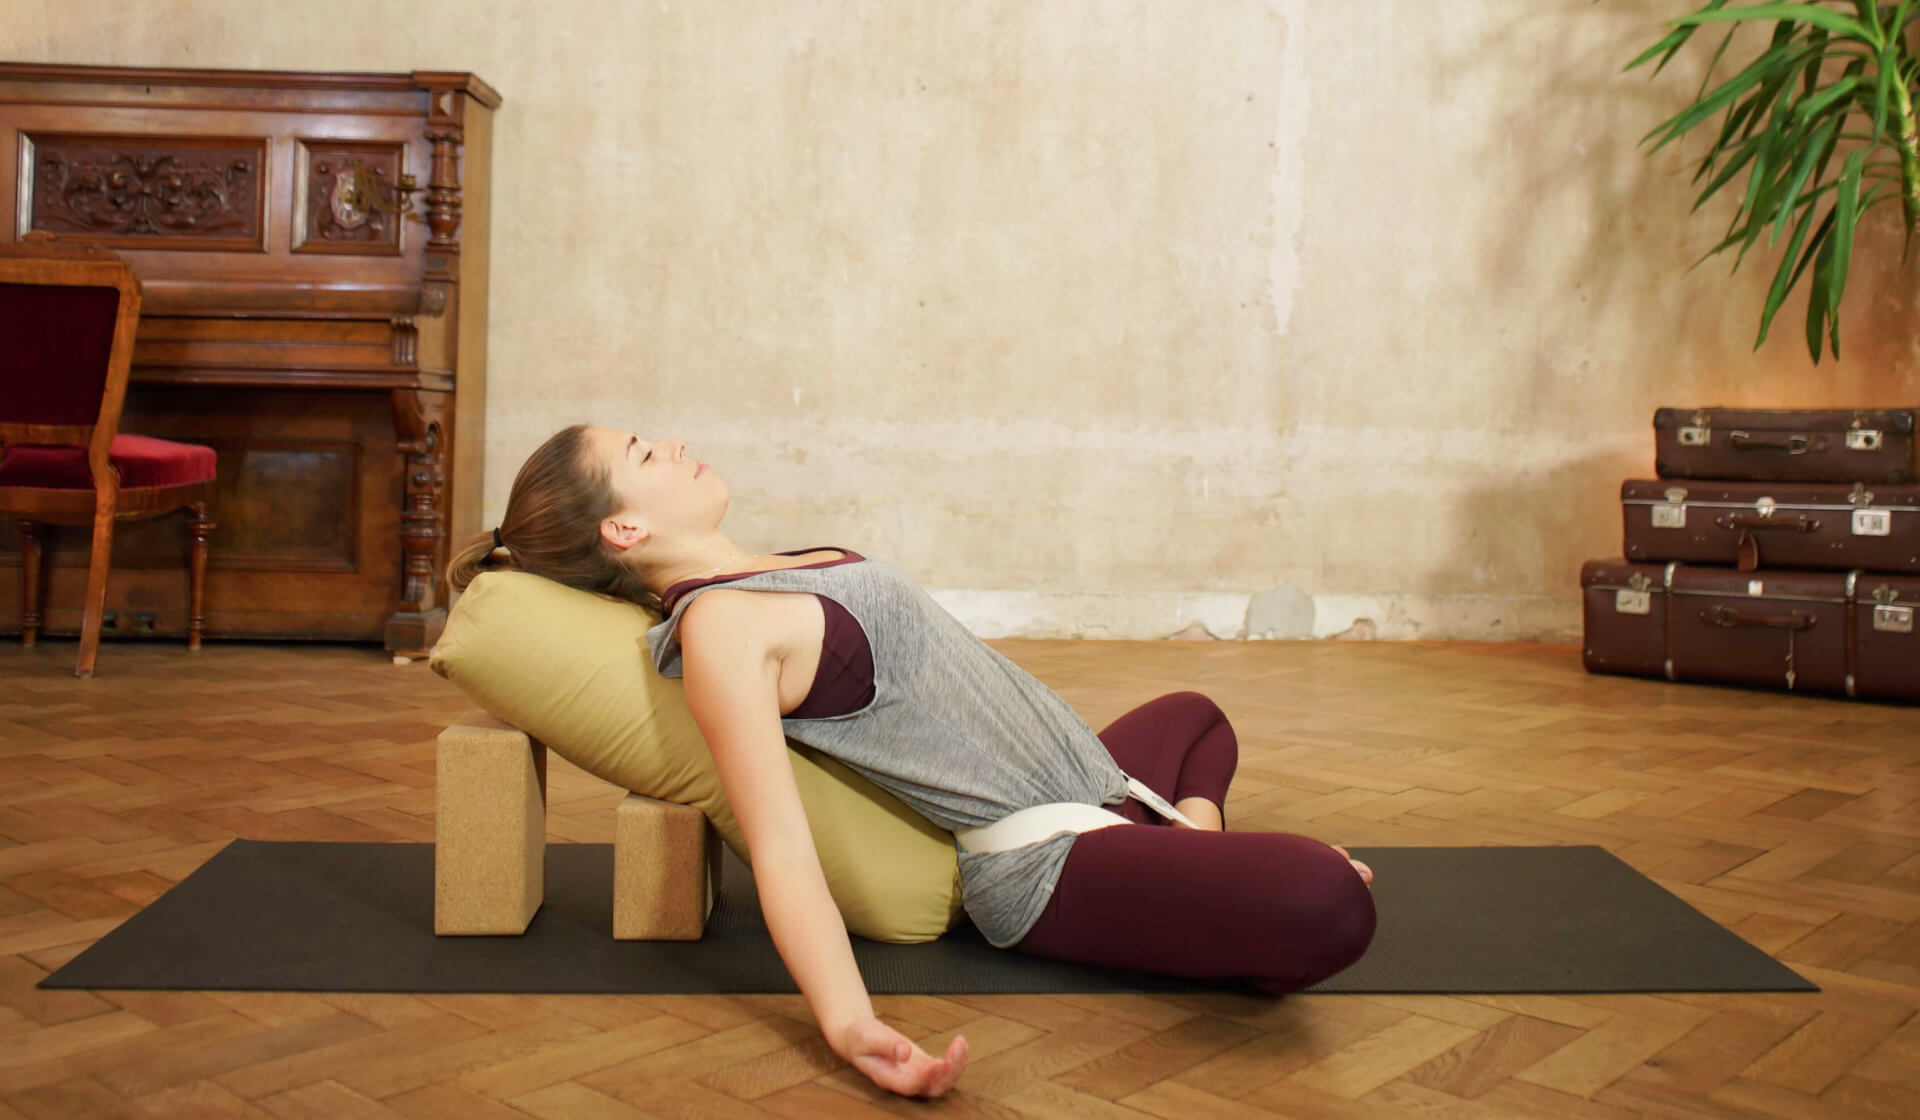 Yoga teacher relaxing in a restorative yoga pose laying over a bolster and blocks with a strap wrapped around her legs